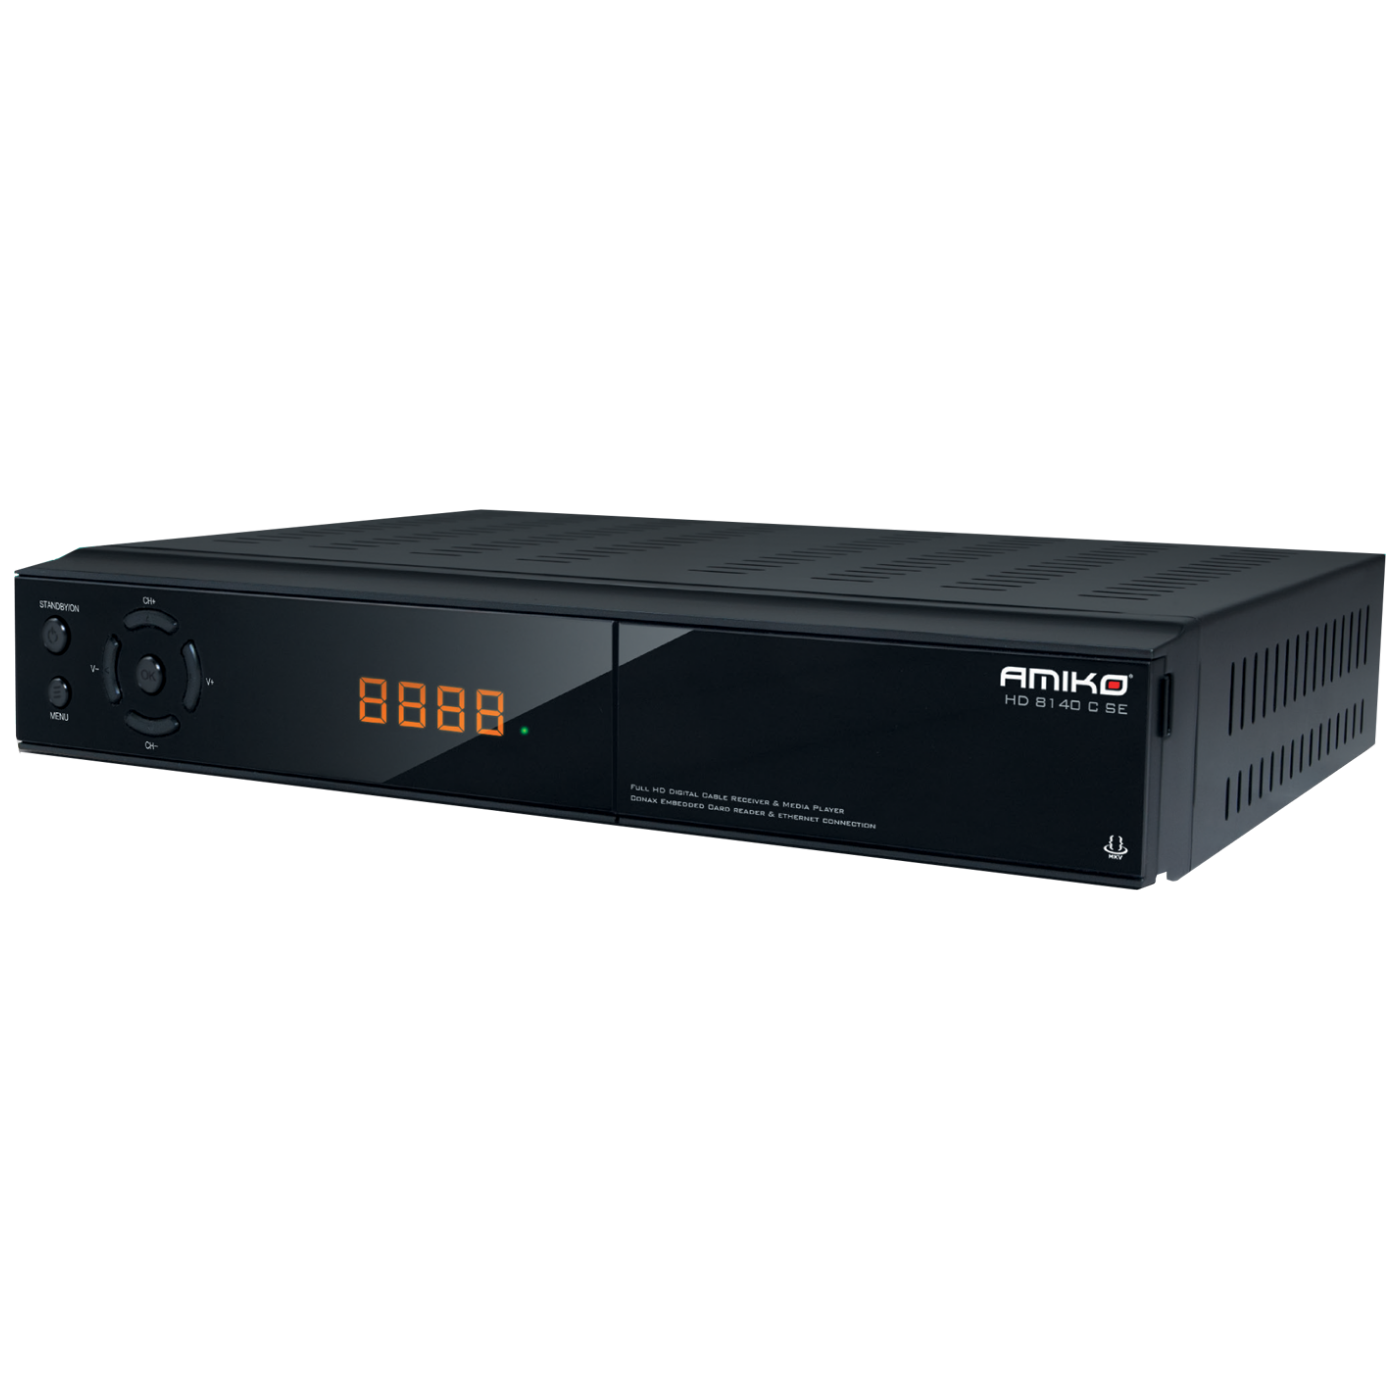 HD 8140C SE | Firmwares & Tools for AMIKO Receivers